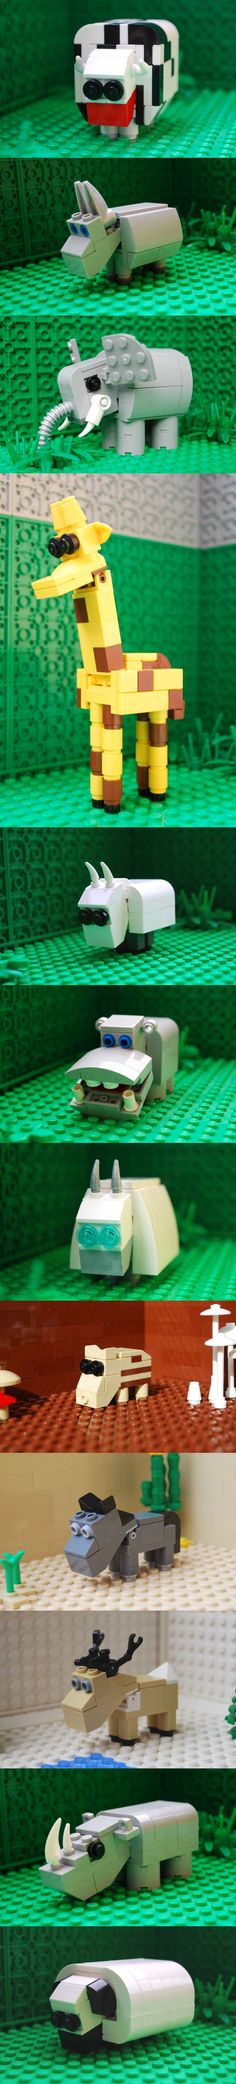 LEGO Animals: cow, donkey, elephant, giraffe, goat, hippo, mountain-goat, piglet, pony, reindeer, rhino, sheep